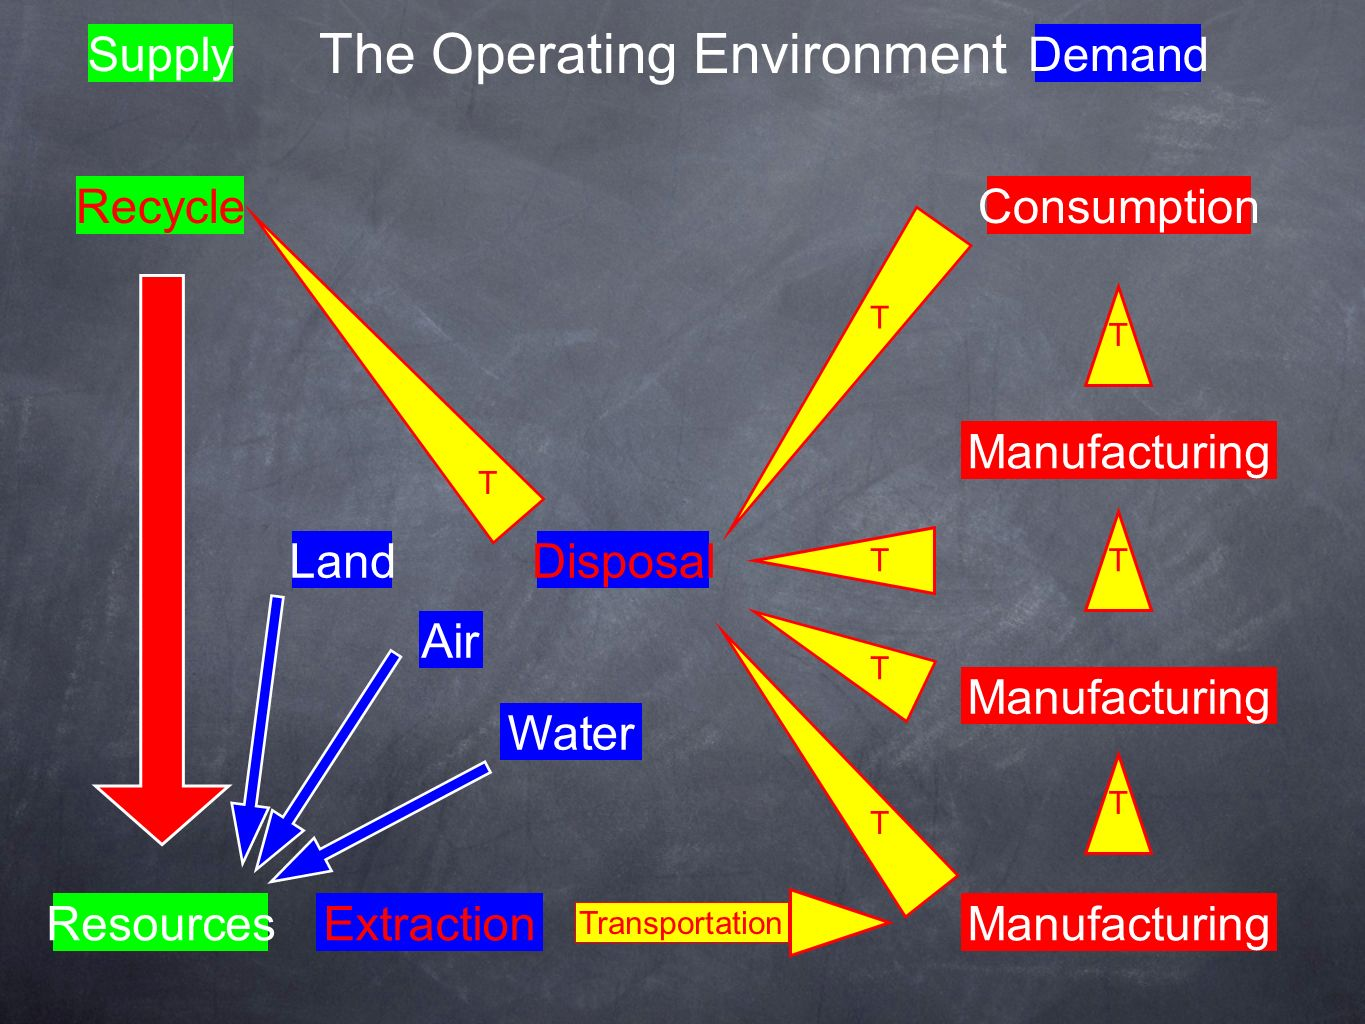 The Operating Environment ResourcesManufacturing Disposal Consumption SupplyDemand Transportation Manufacturing Recycle Land Water Air Extraction T T T T T T T T T